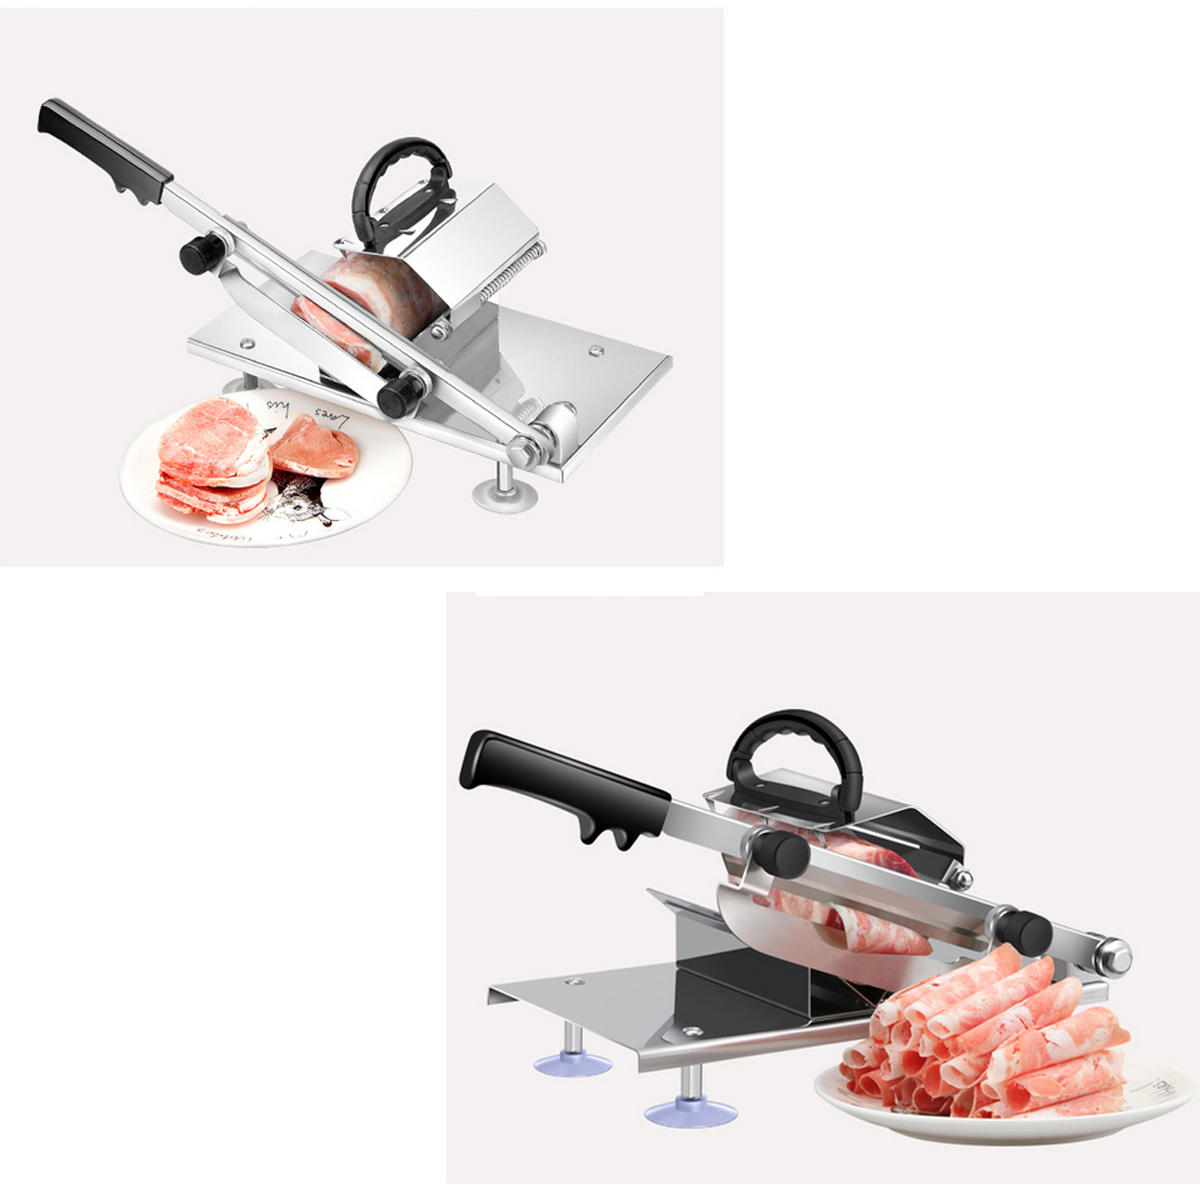 Household Meat Slicer Manual Frozen Meat Slicer Cutter Beef Mutton Sheet Slicing Machine